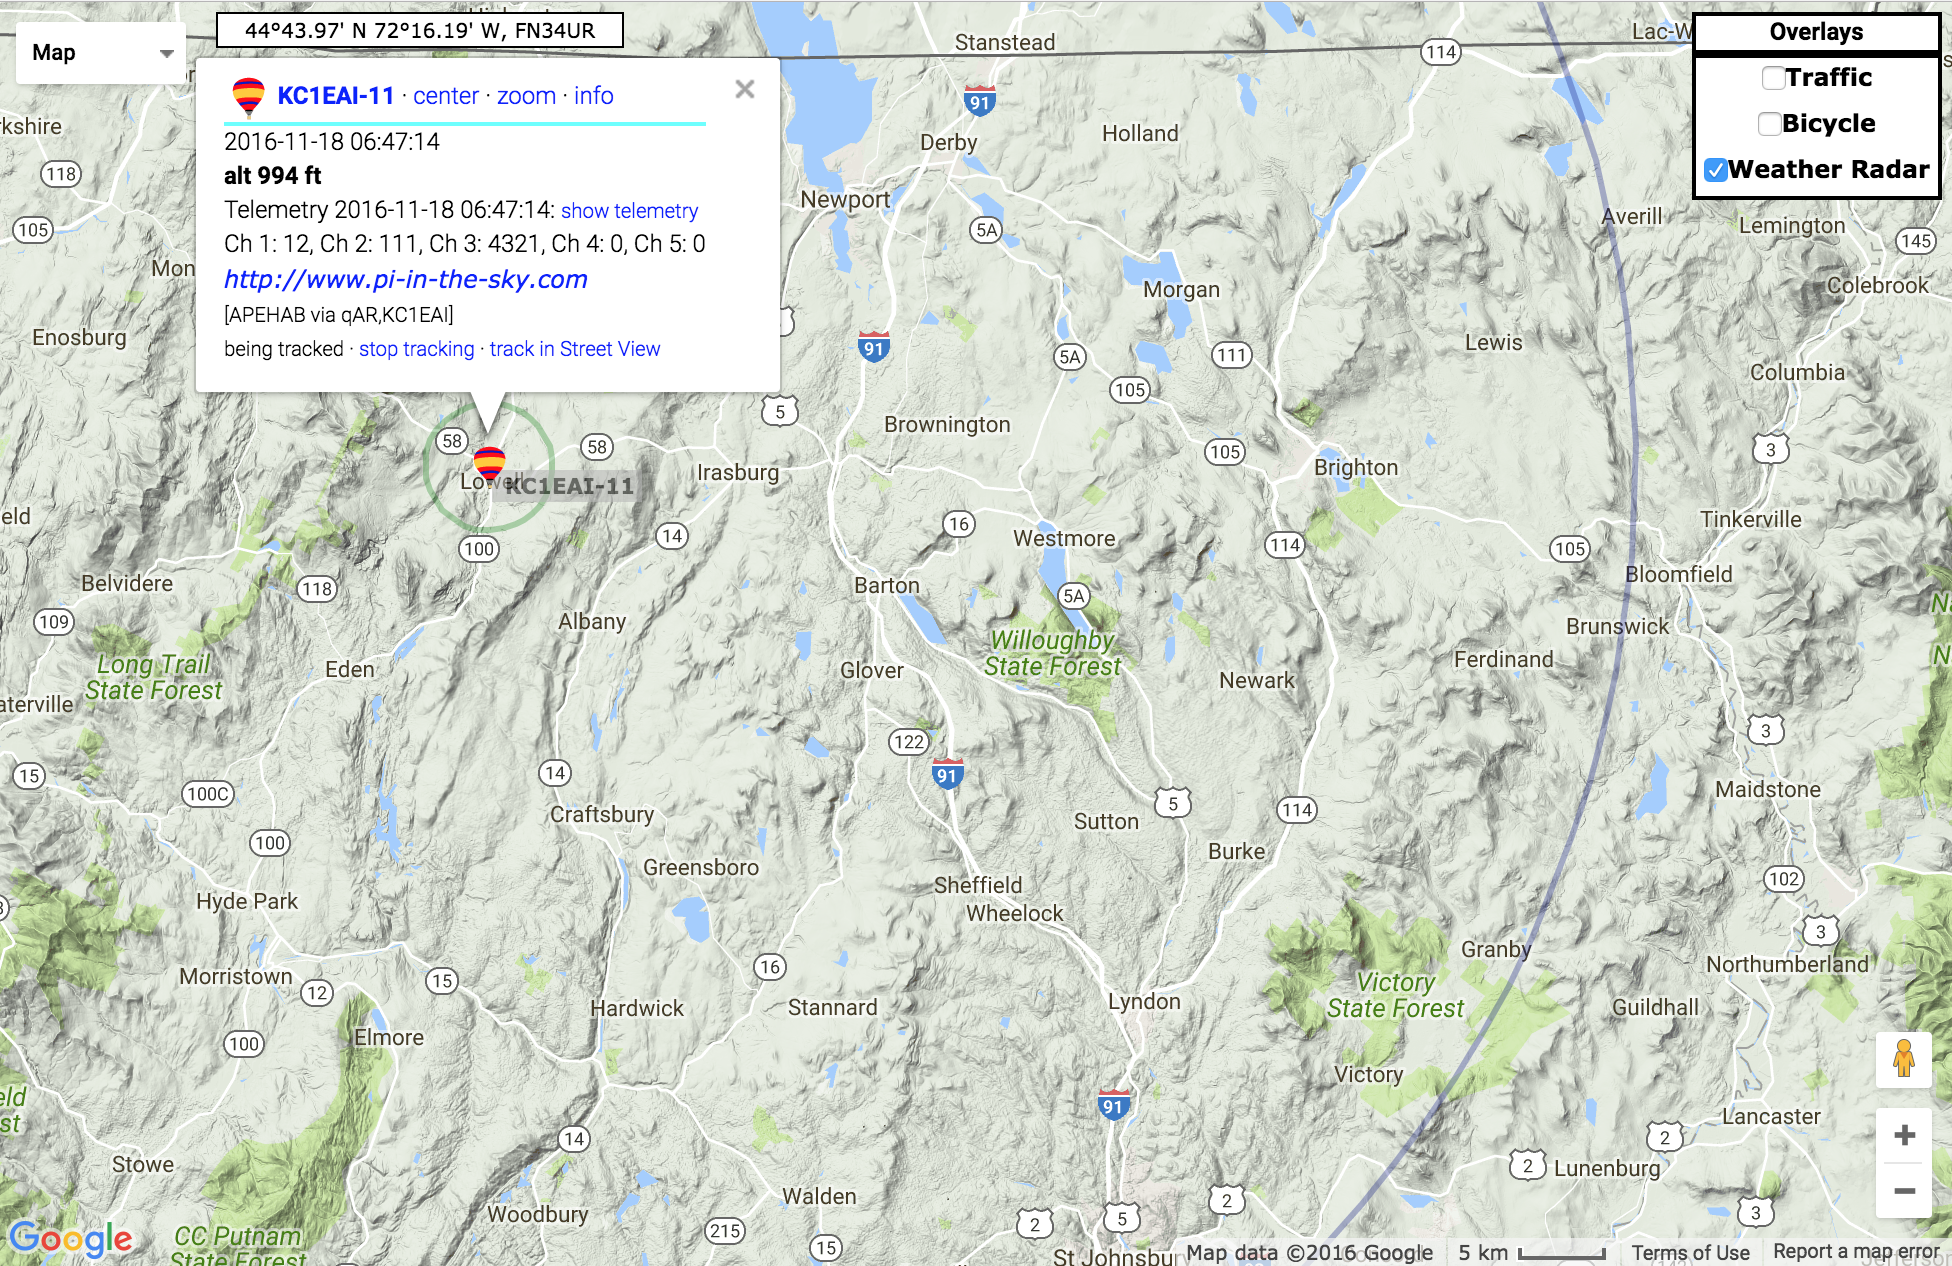 Image from the website aprs.fi on the day of our launch.  We intended on using this website to display our balloon flight path across the region from Vermont to New Hampshire.